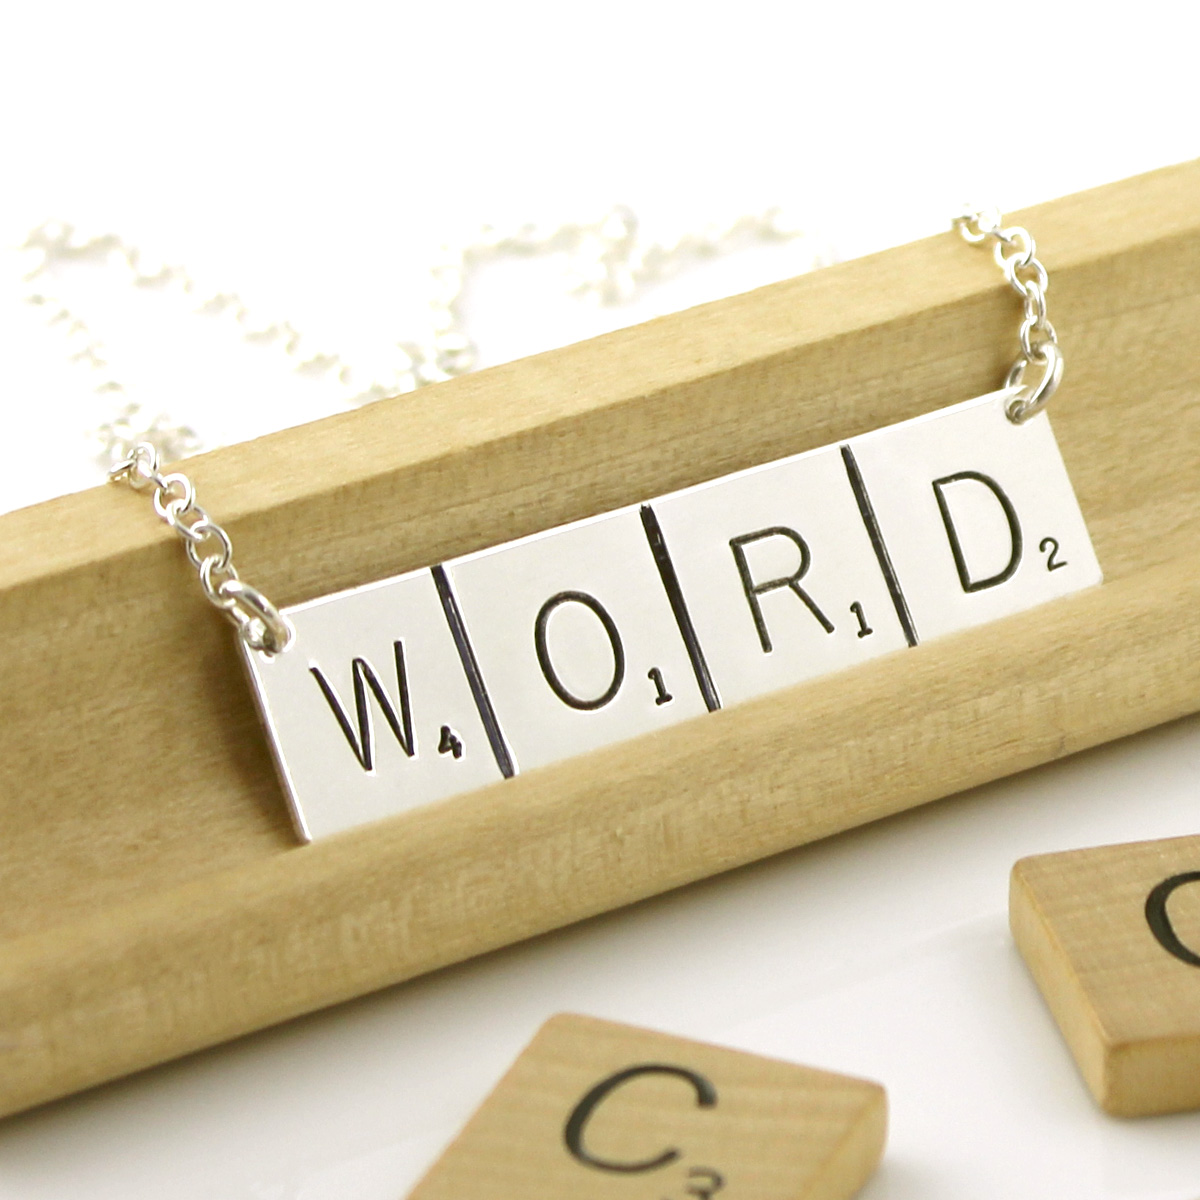 Scrabble Inspired Necklace - WORD (Ready to Ship)